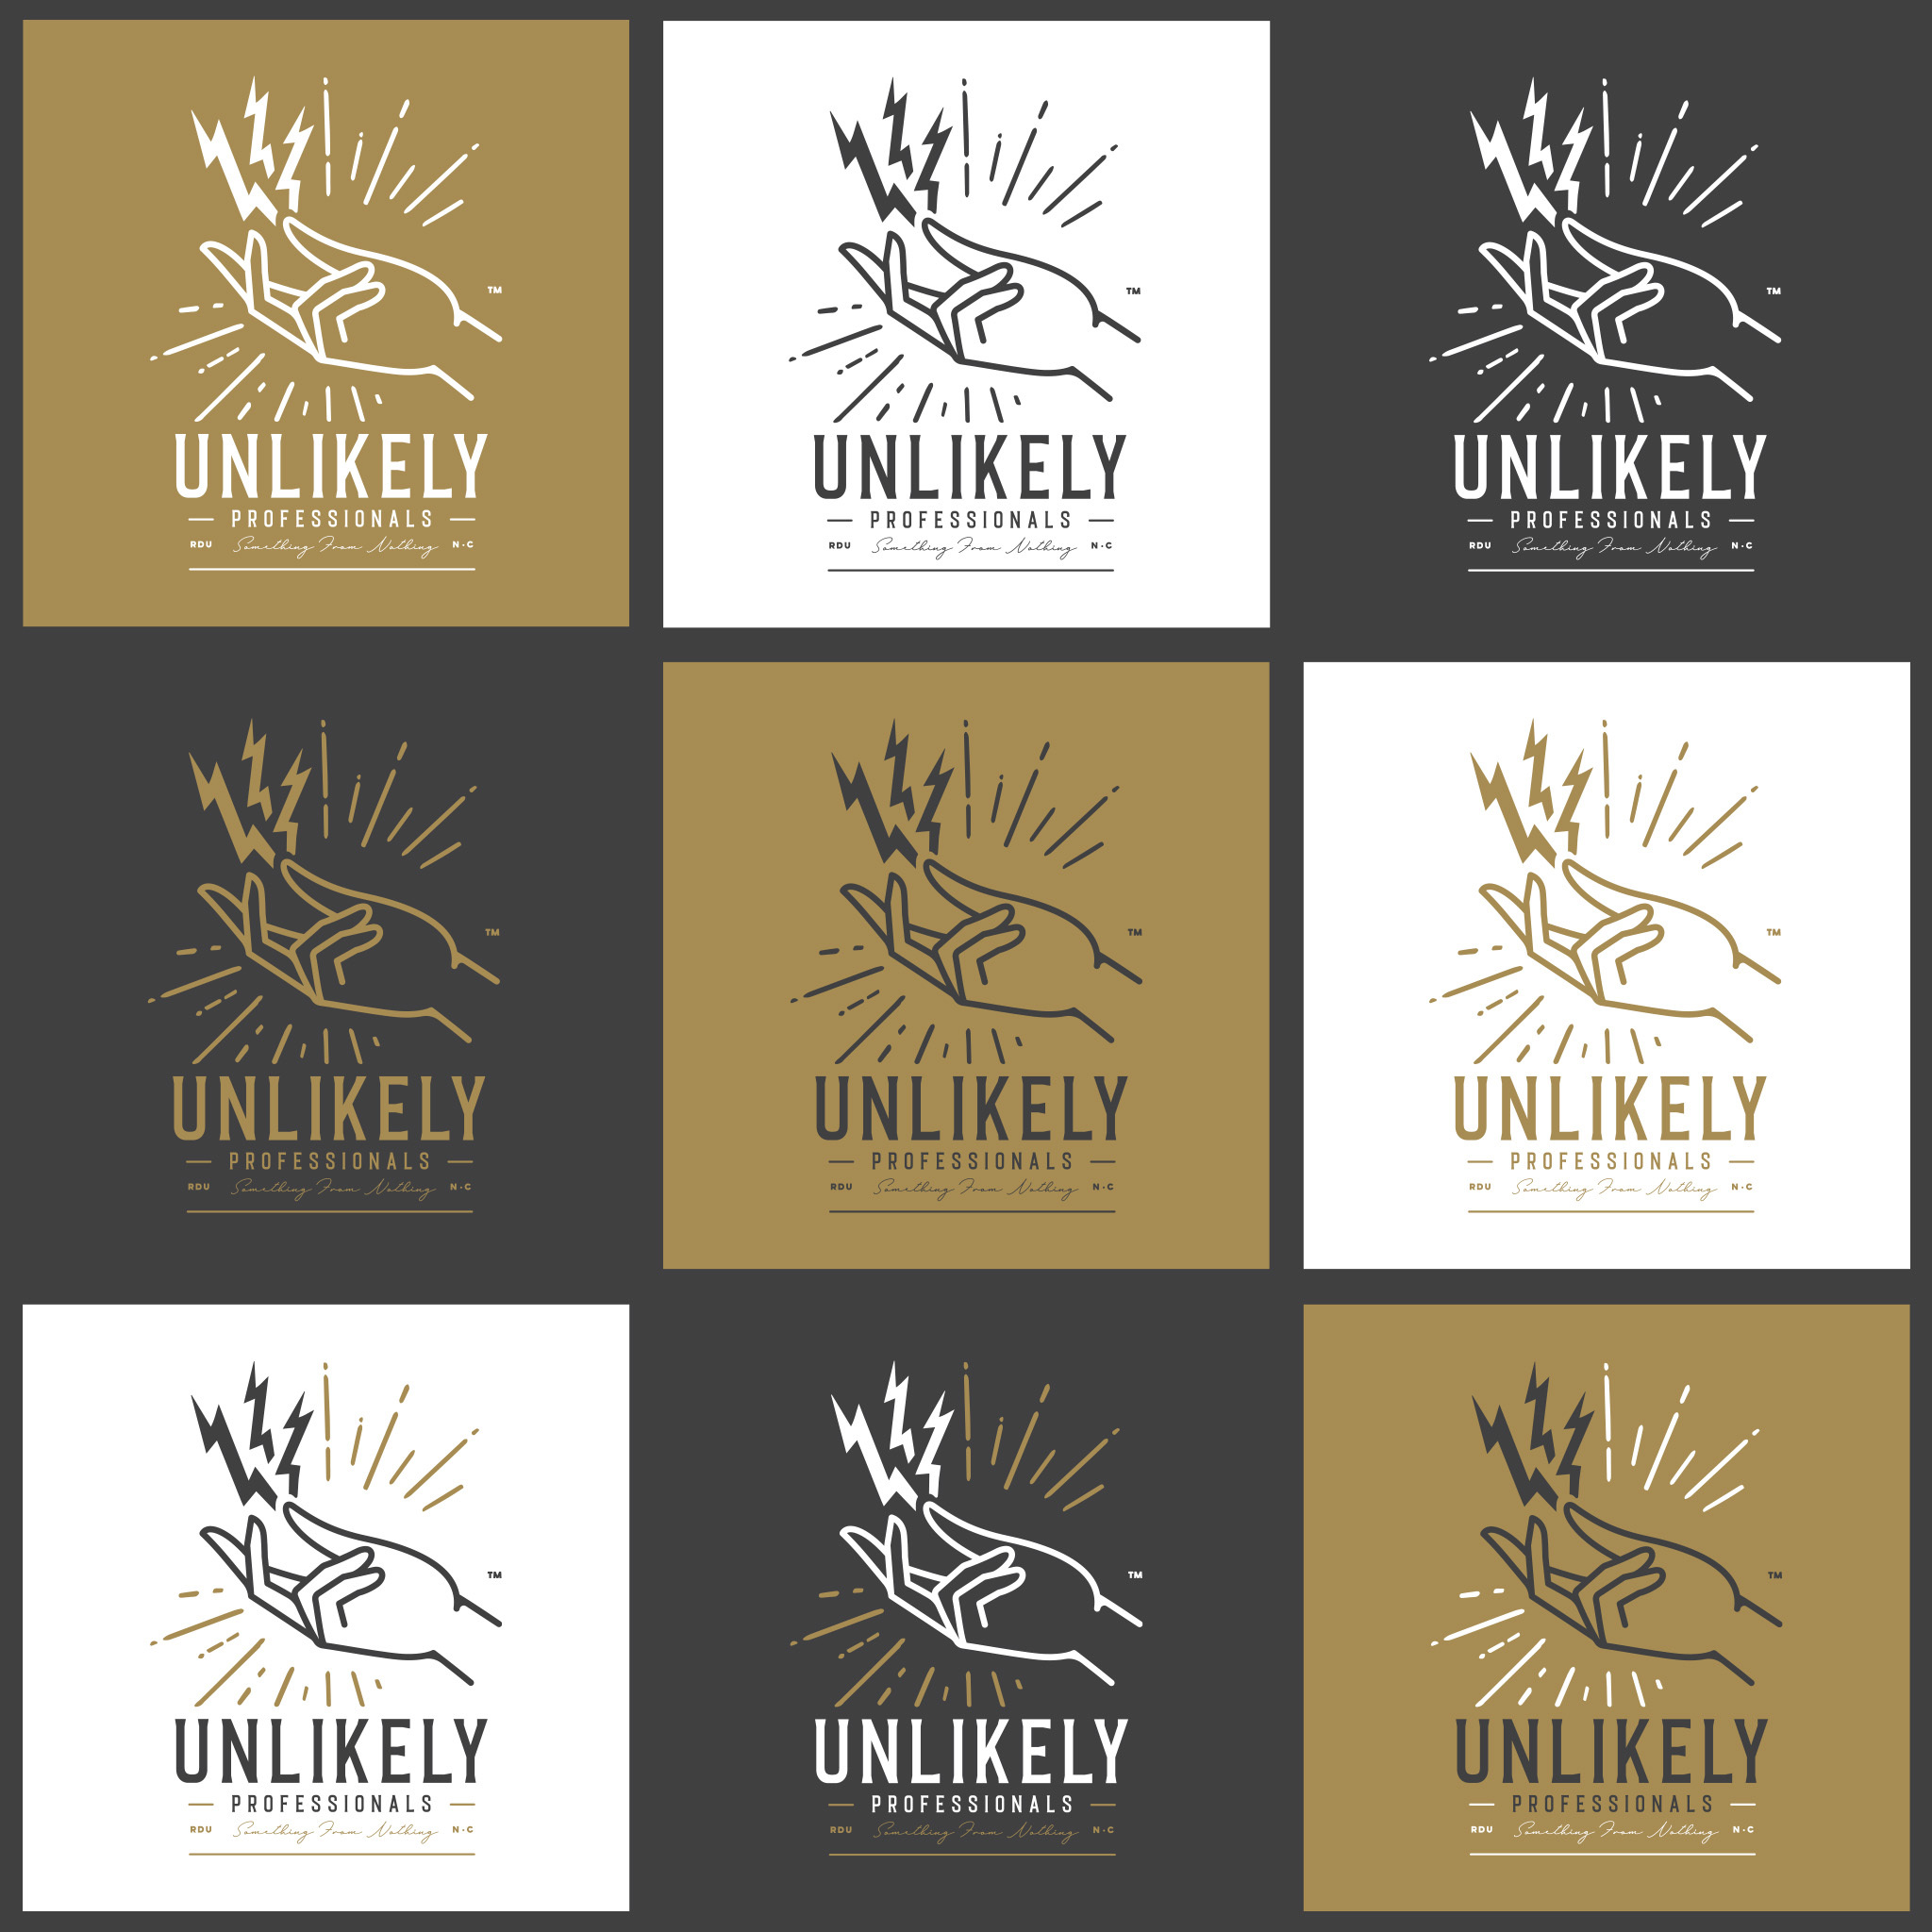 Logo and Brand Design for Unlikely Professionals by Brand Engine